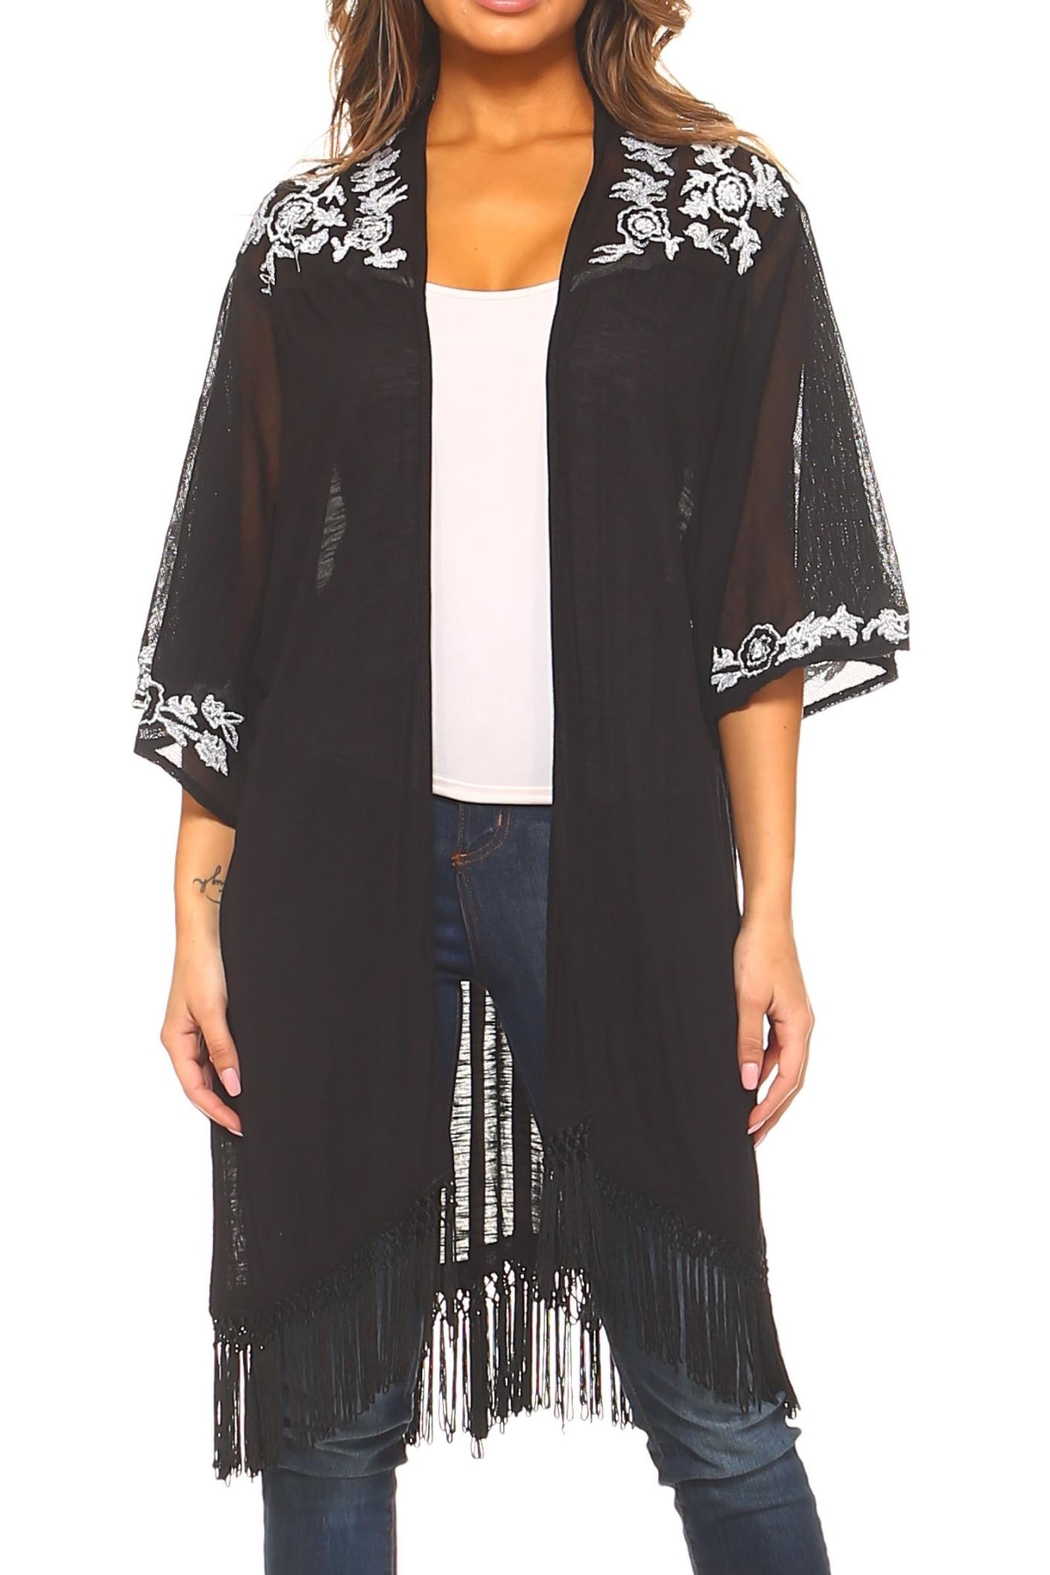 Sloane Rouge Embroidered Long Cardigan - Main Image